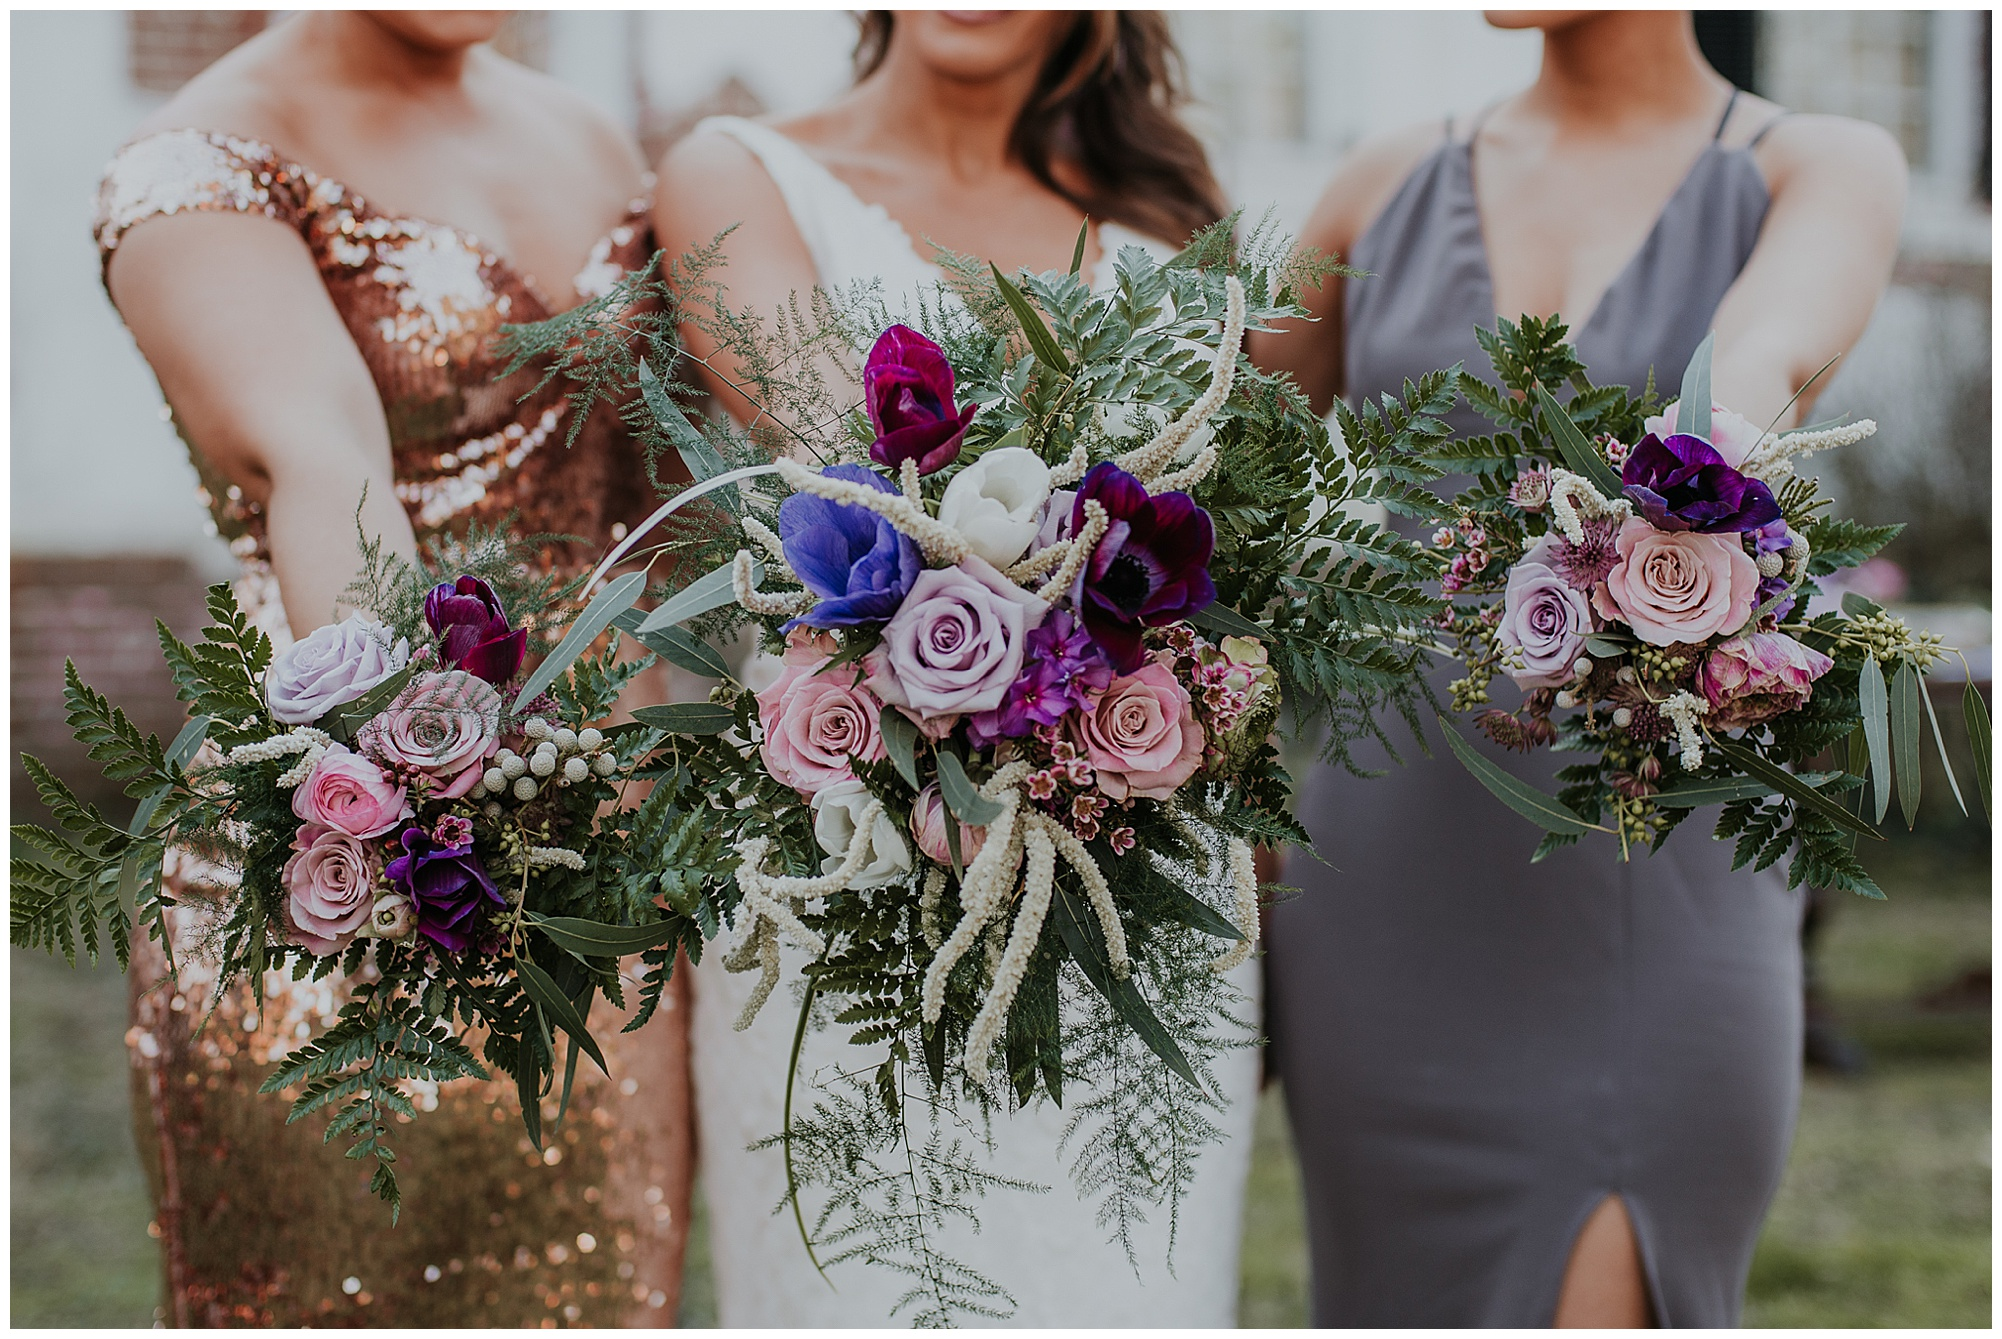 glamorous and boho style wedding theme at chanceford hall bed and breakfast. bride and bridesmaids holding floral bouquets. maryland chanceford hall wedding now featured on my eastern shore wedding.